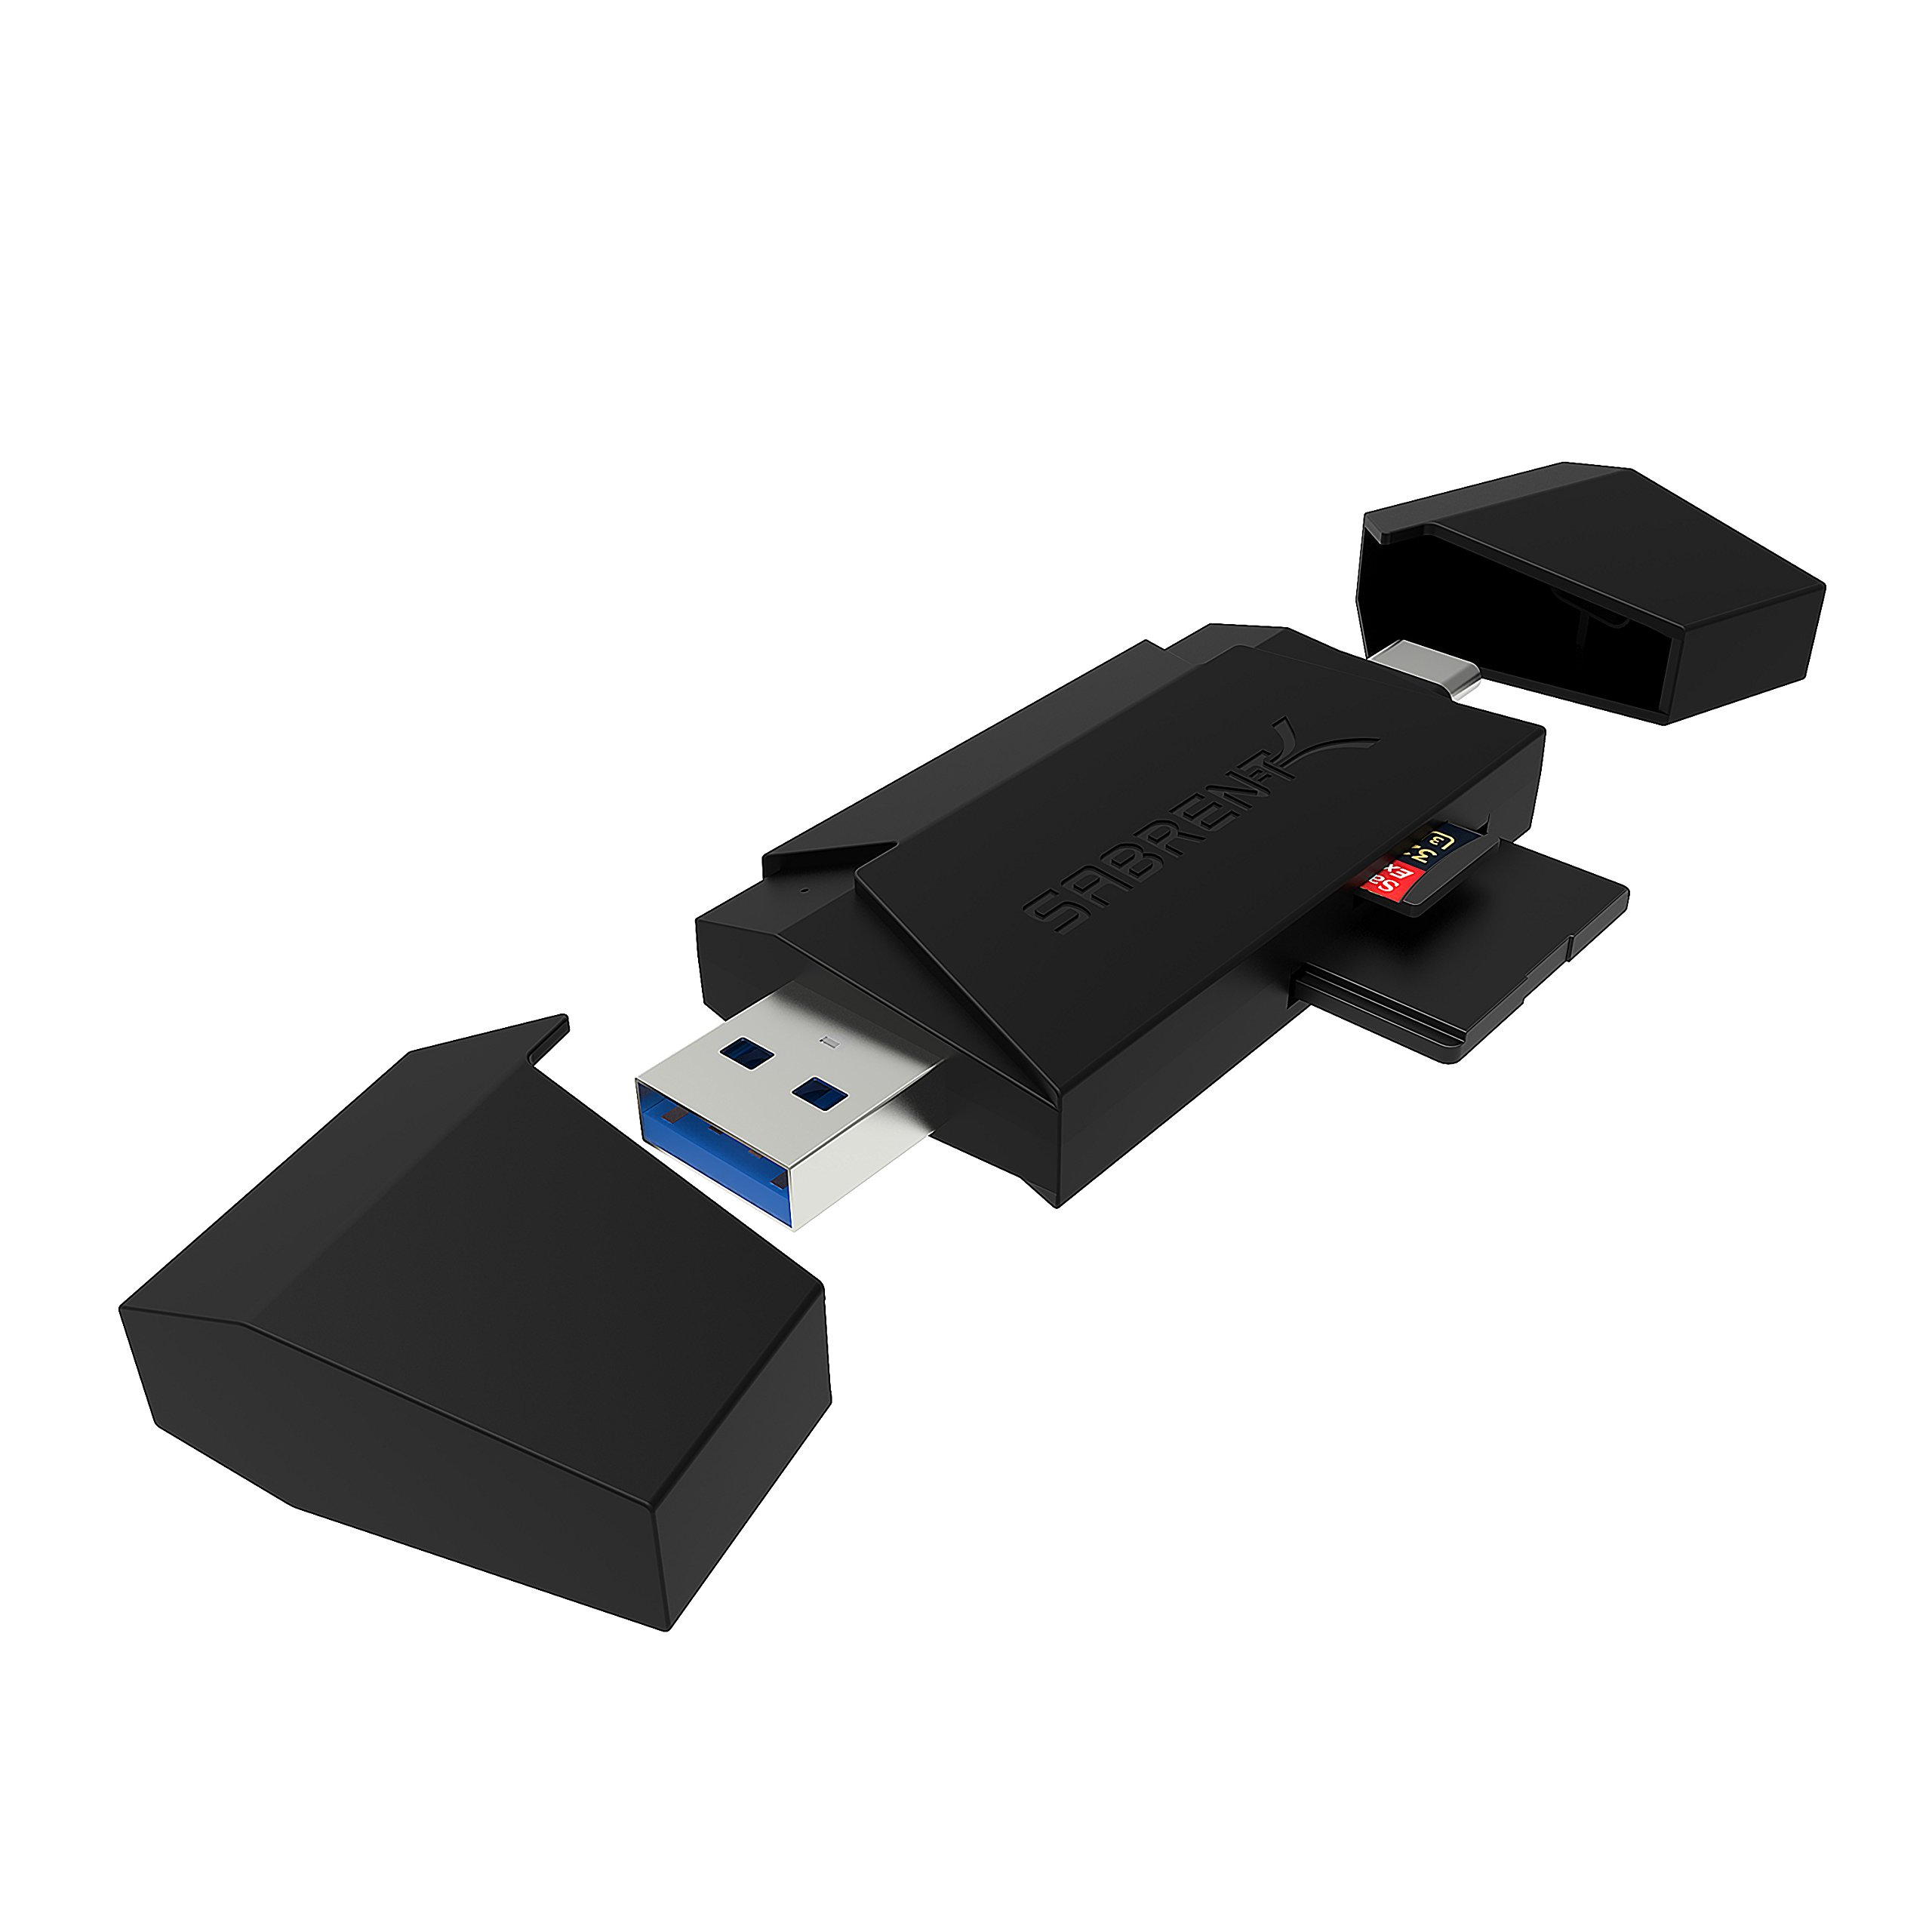 Sabrent 2-Slot Type-C OTG and USB 3.0 Flash Memory Card Reader for Windows, Mac, Linux, and Certain Android Systems - Supports SD , SDHC , SDXC , MMC / MicroSD , T-Flash [Black] (CR-UM4C)